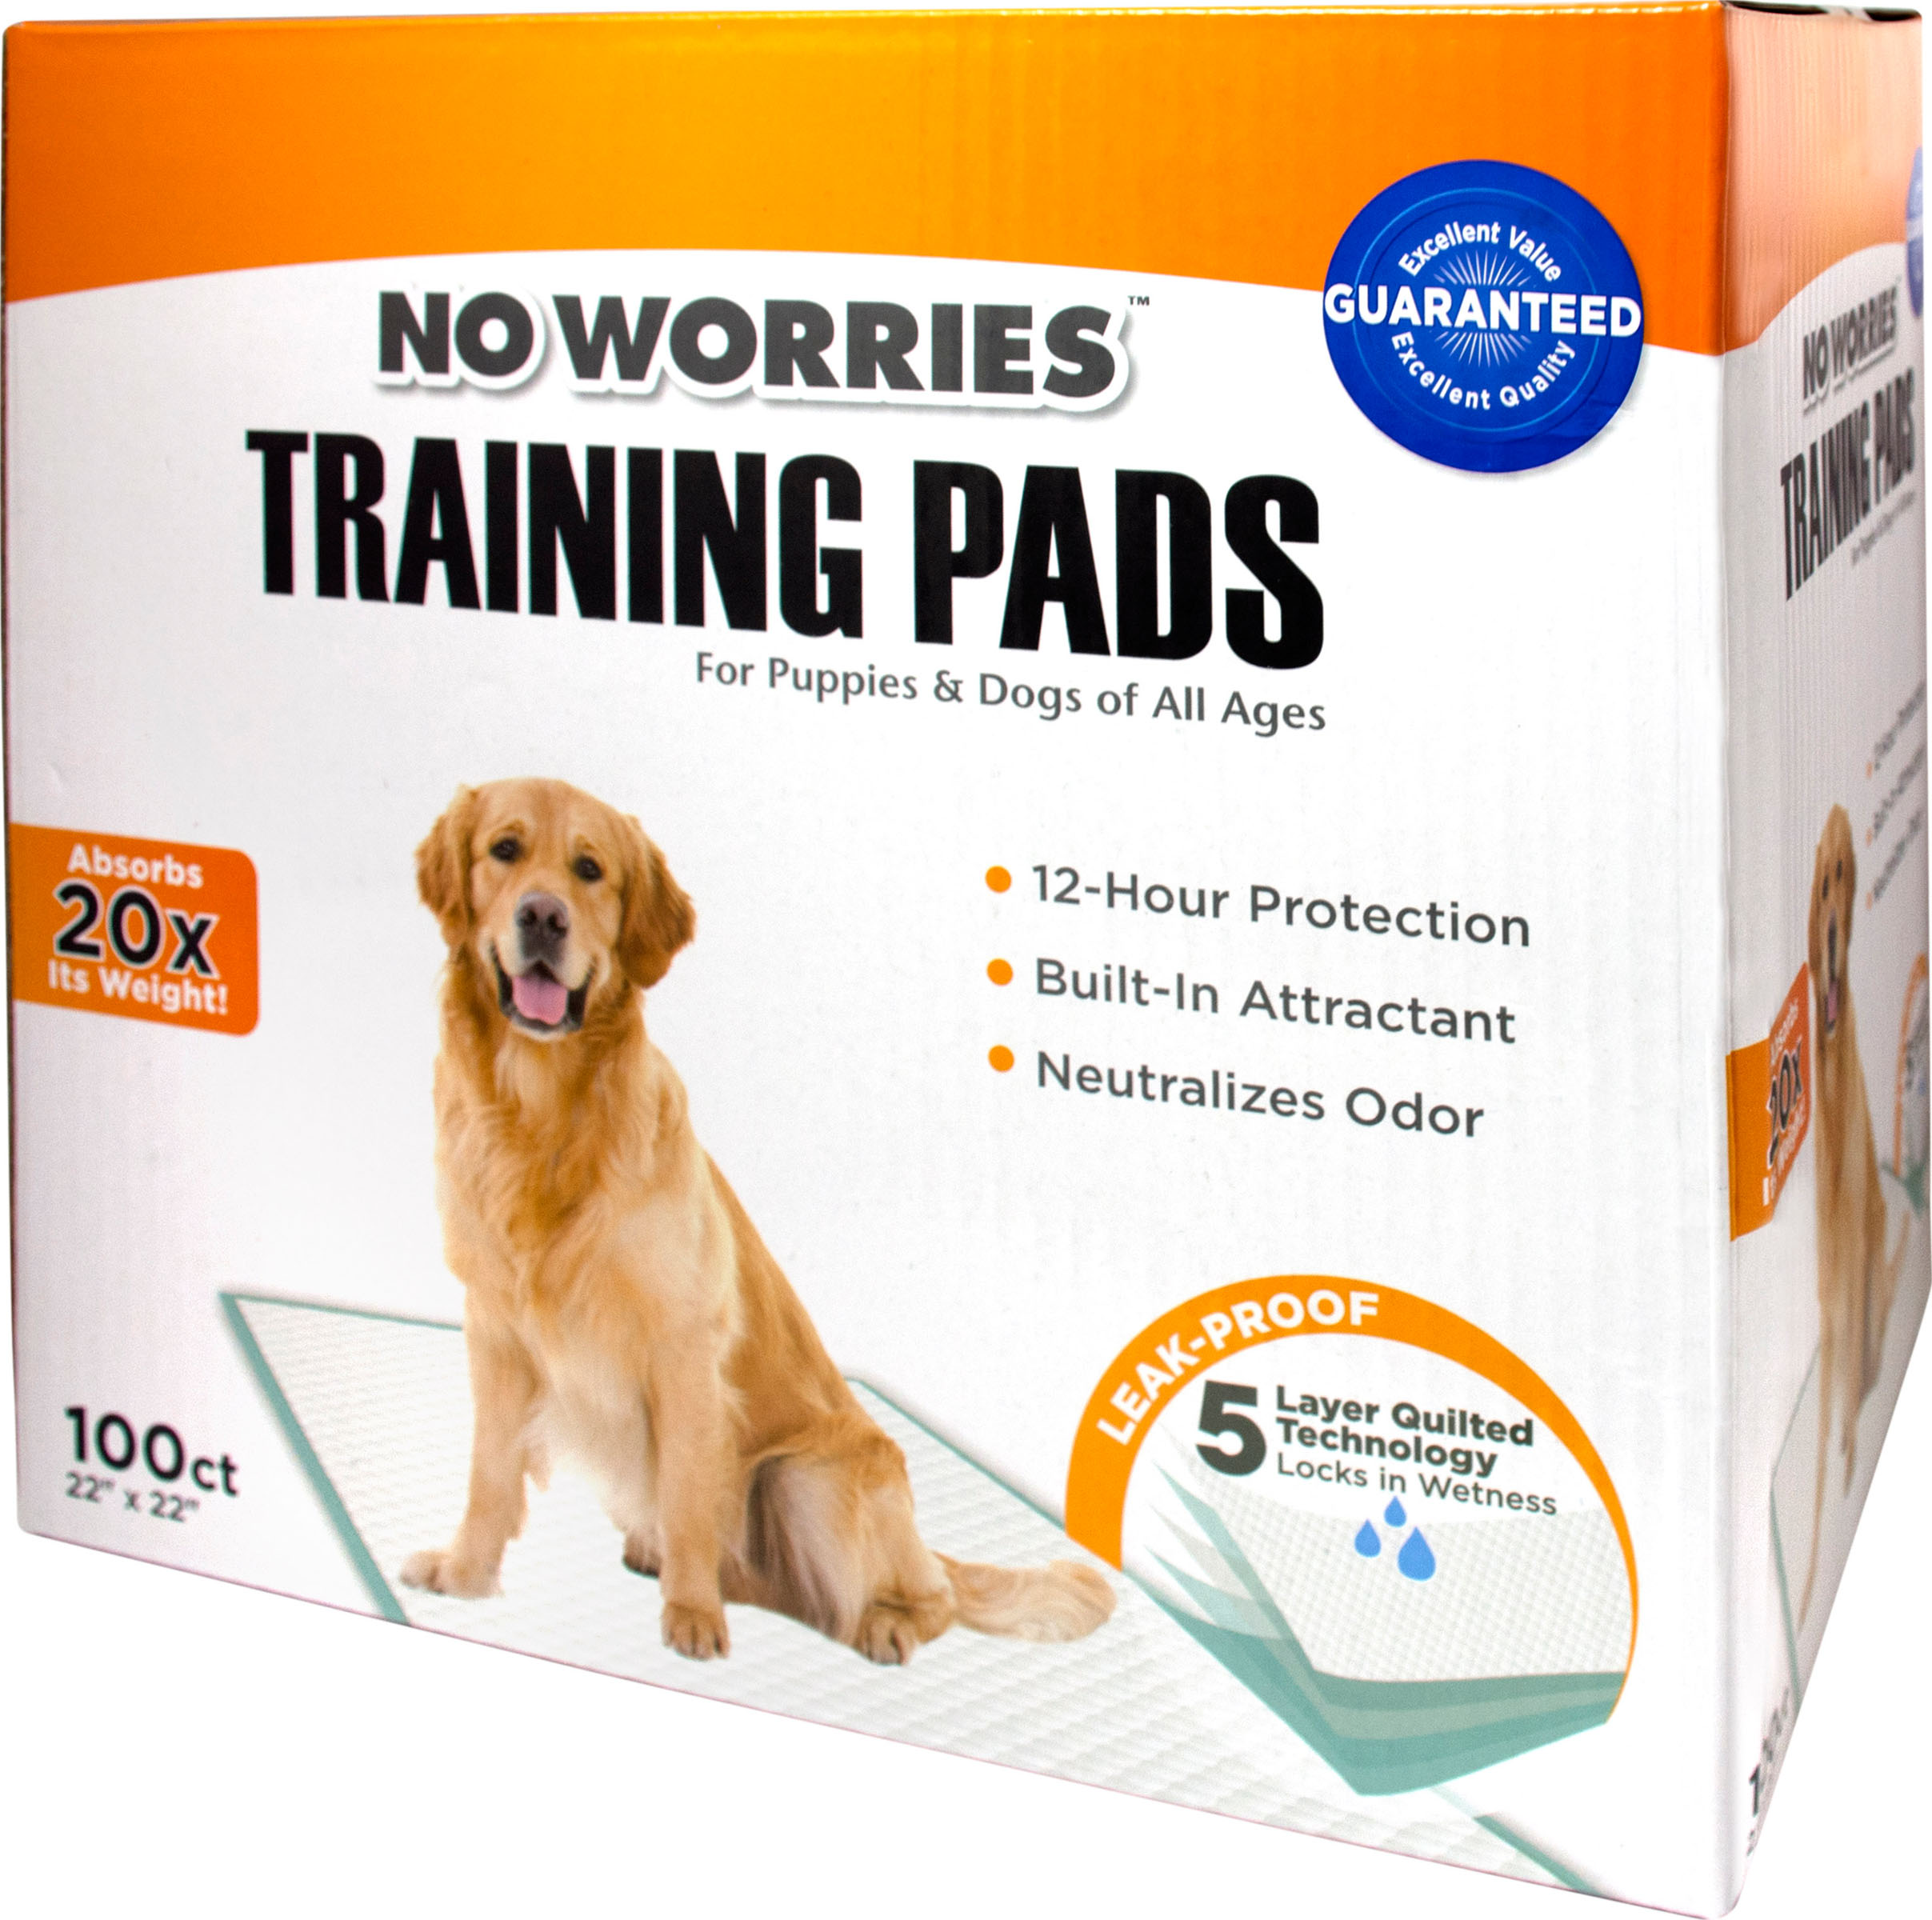 Four Paws No Worries Training Dog Pads, 100-count (Size: 100-count) Image